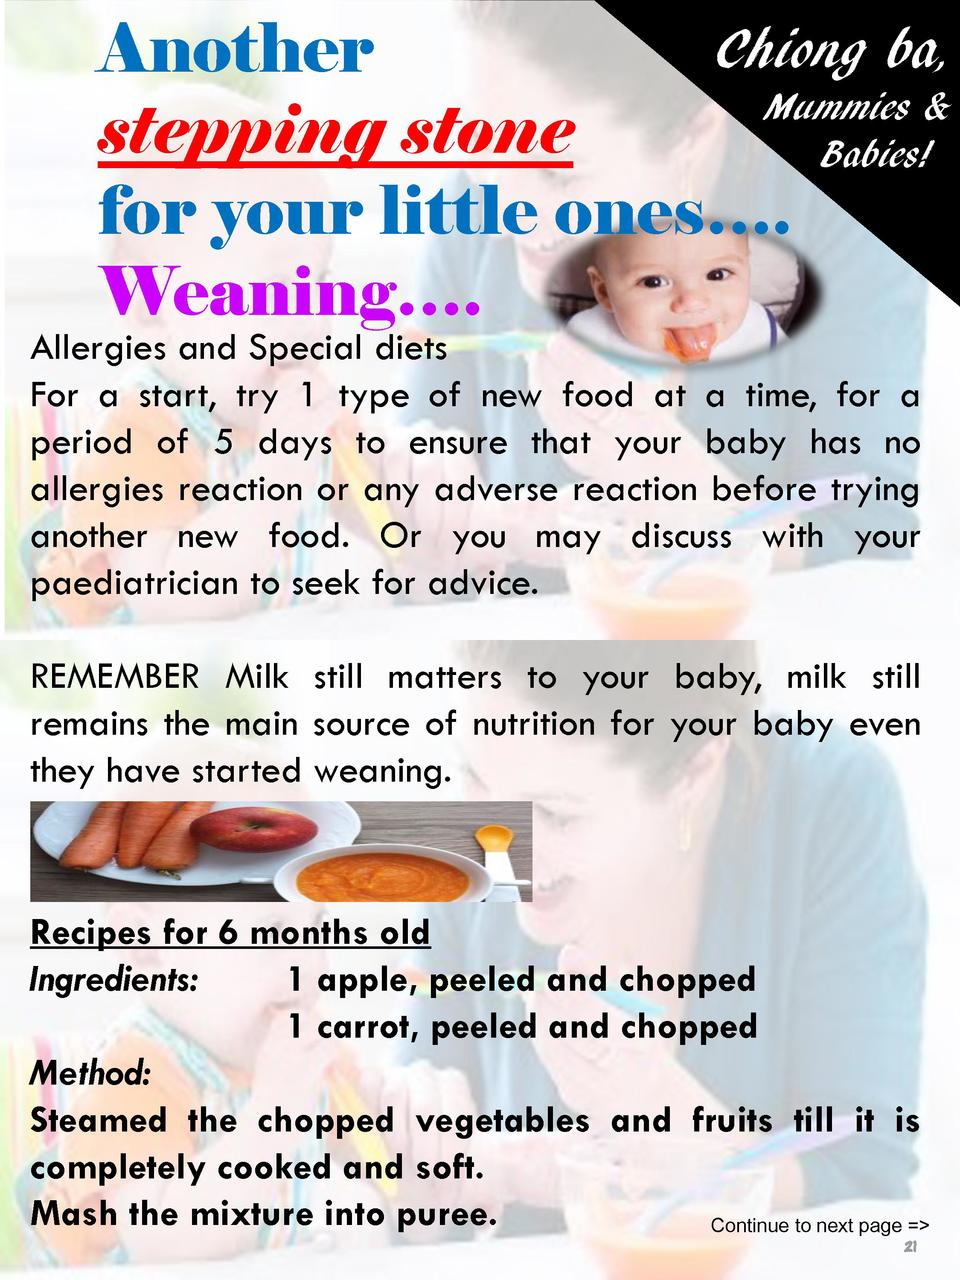 Chiong ba, Another Mummies   stepping stone Babies  for your little ones   . Weaning   .  Allergies and Special diets For ...